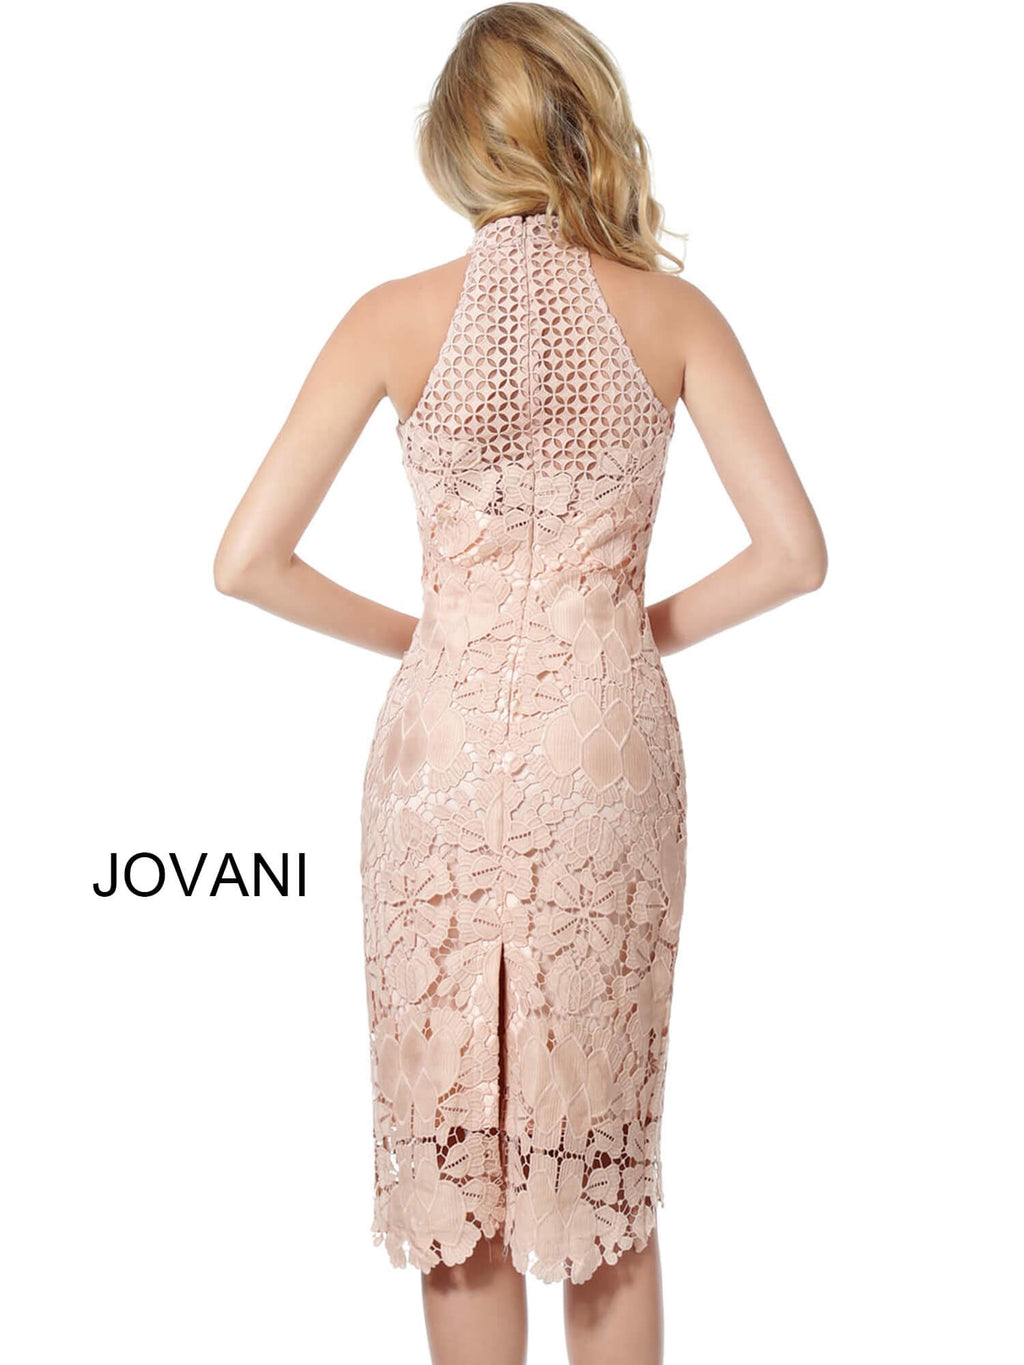 JOVANI 68747 Light Pink High Neck Sleeveless Lace Cocktail Dress